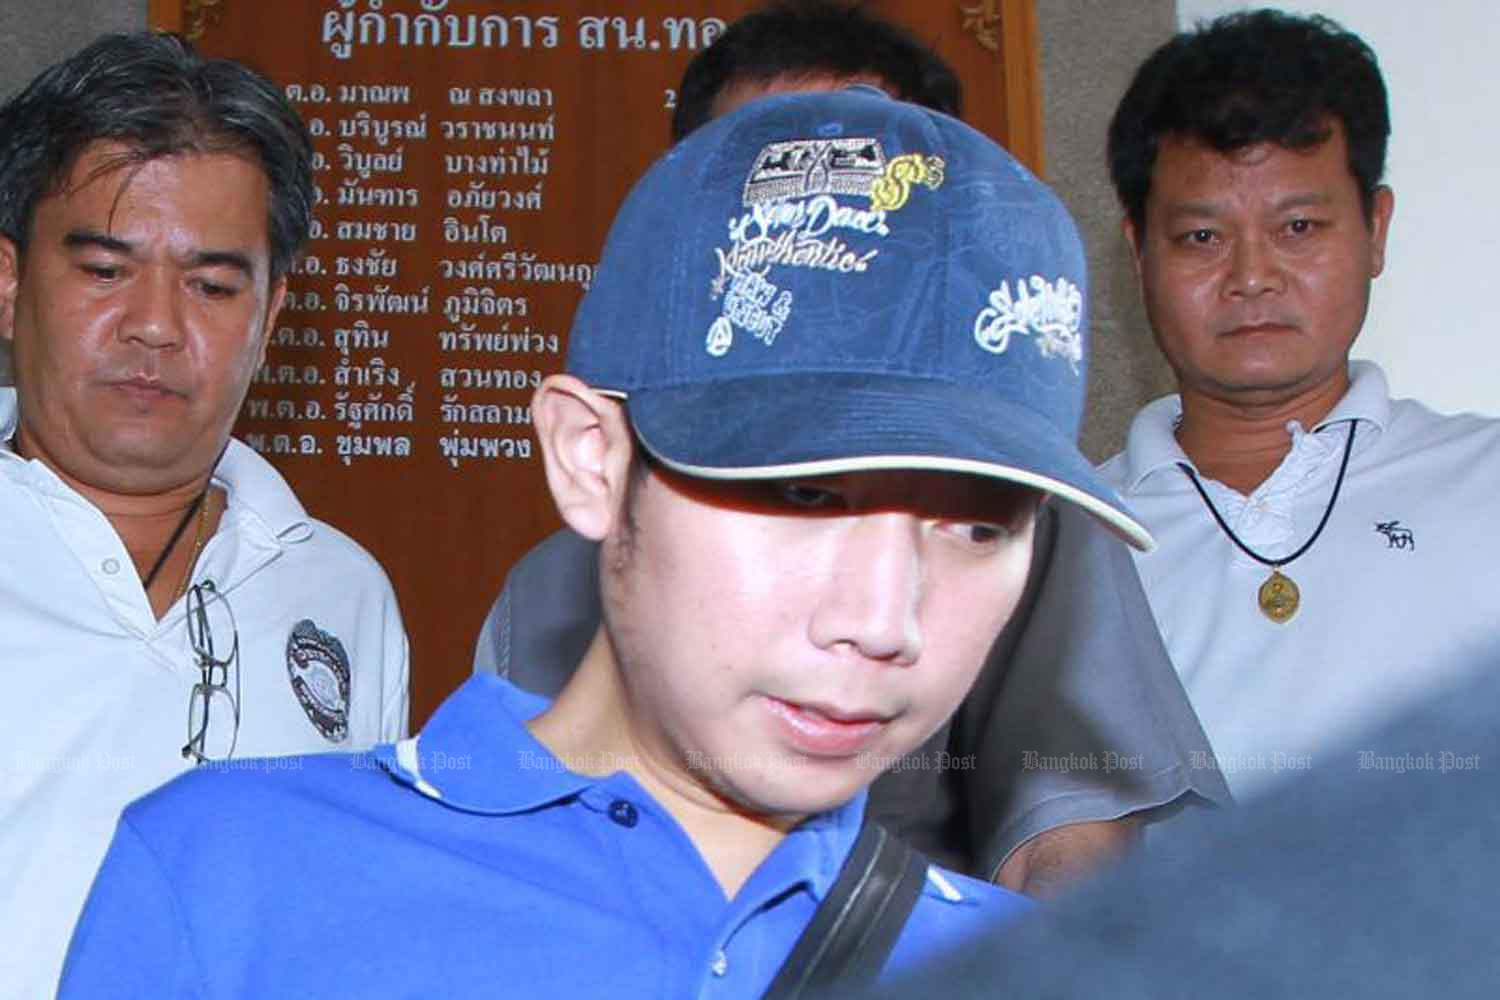 Vorayuth Yoovidhya, 27, known as Boss, was arrested in September 2012 after a black Ferrari ran into a motorcycle on Sukhumvit Soi 47, Bangkok. The motorcycle's rider, Pol Snr Sgt Maj Wichian Klanprasert, 48, of Thong Lor police station, was killed. (Photo by Somchai Poomlard)